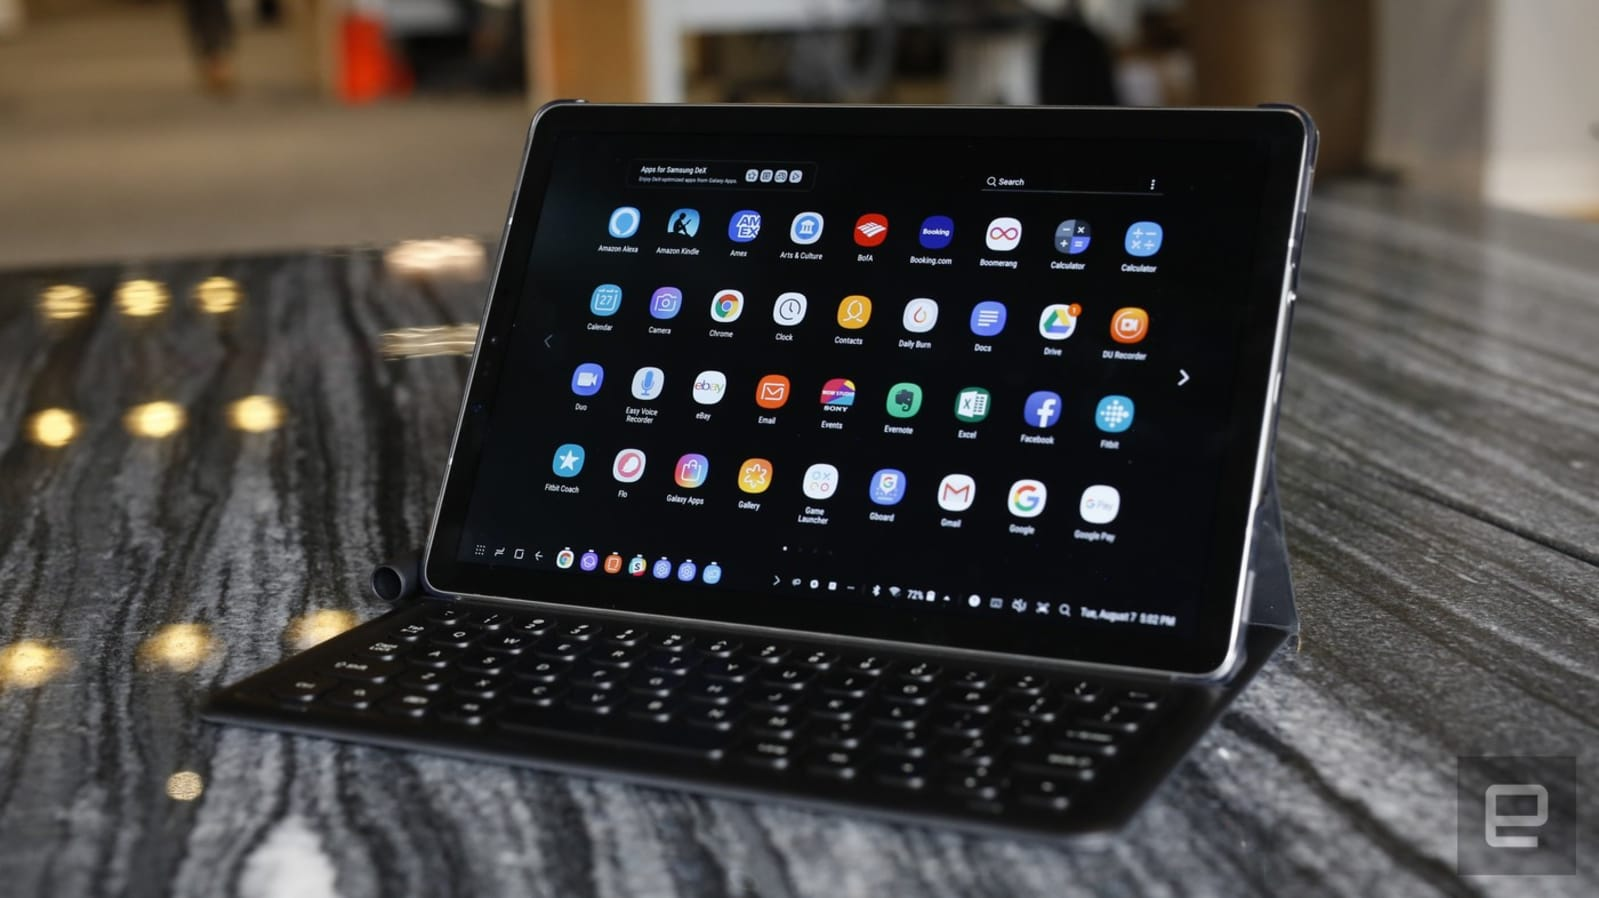 The Galaxy Tab S4 is built for work, but gets very little done